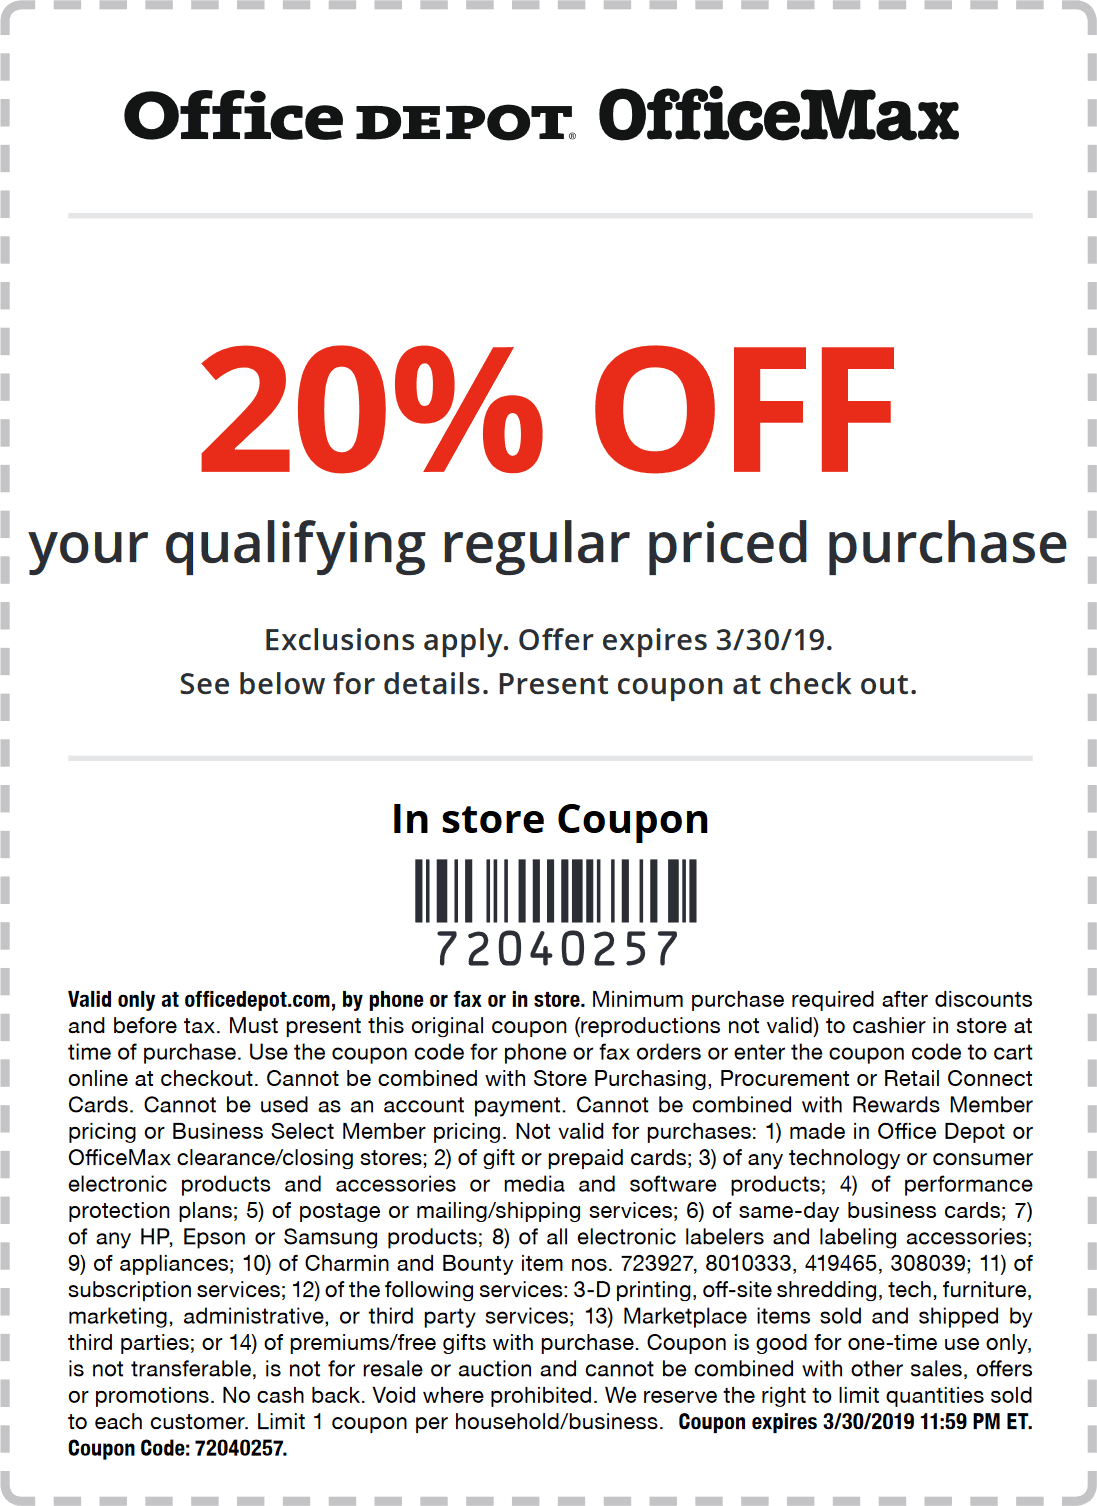 Office Depot Coupon August 2019 20% off at Office Depot & OfficeMax, or online via promo code 72040257